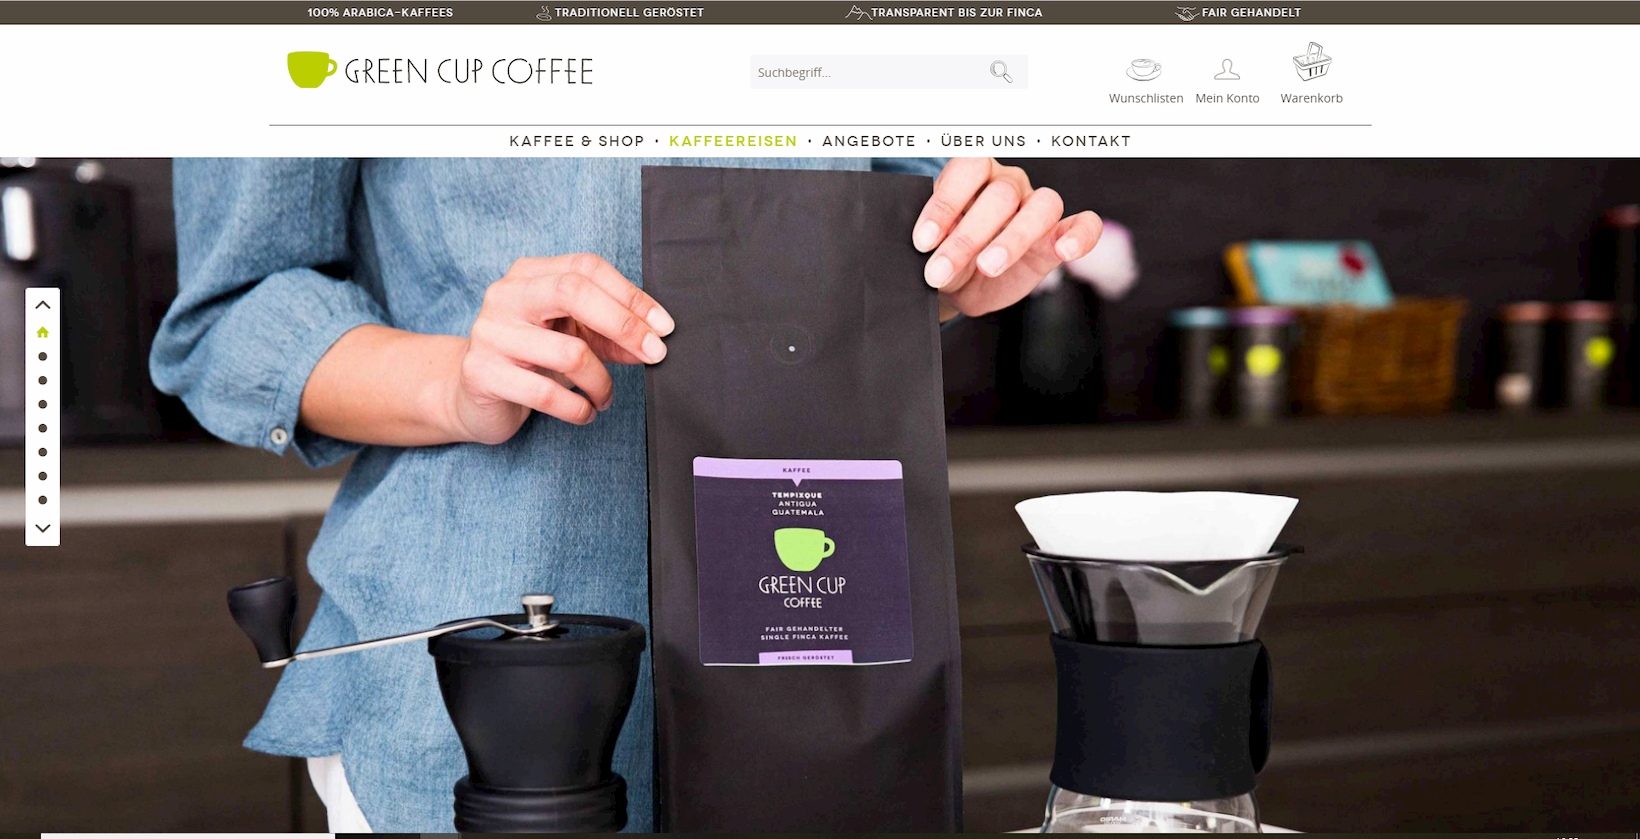 Onlineshop von Green Cup Caffee auf Shopware-Basis